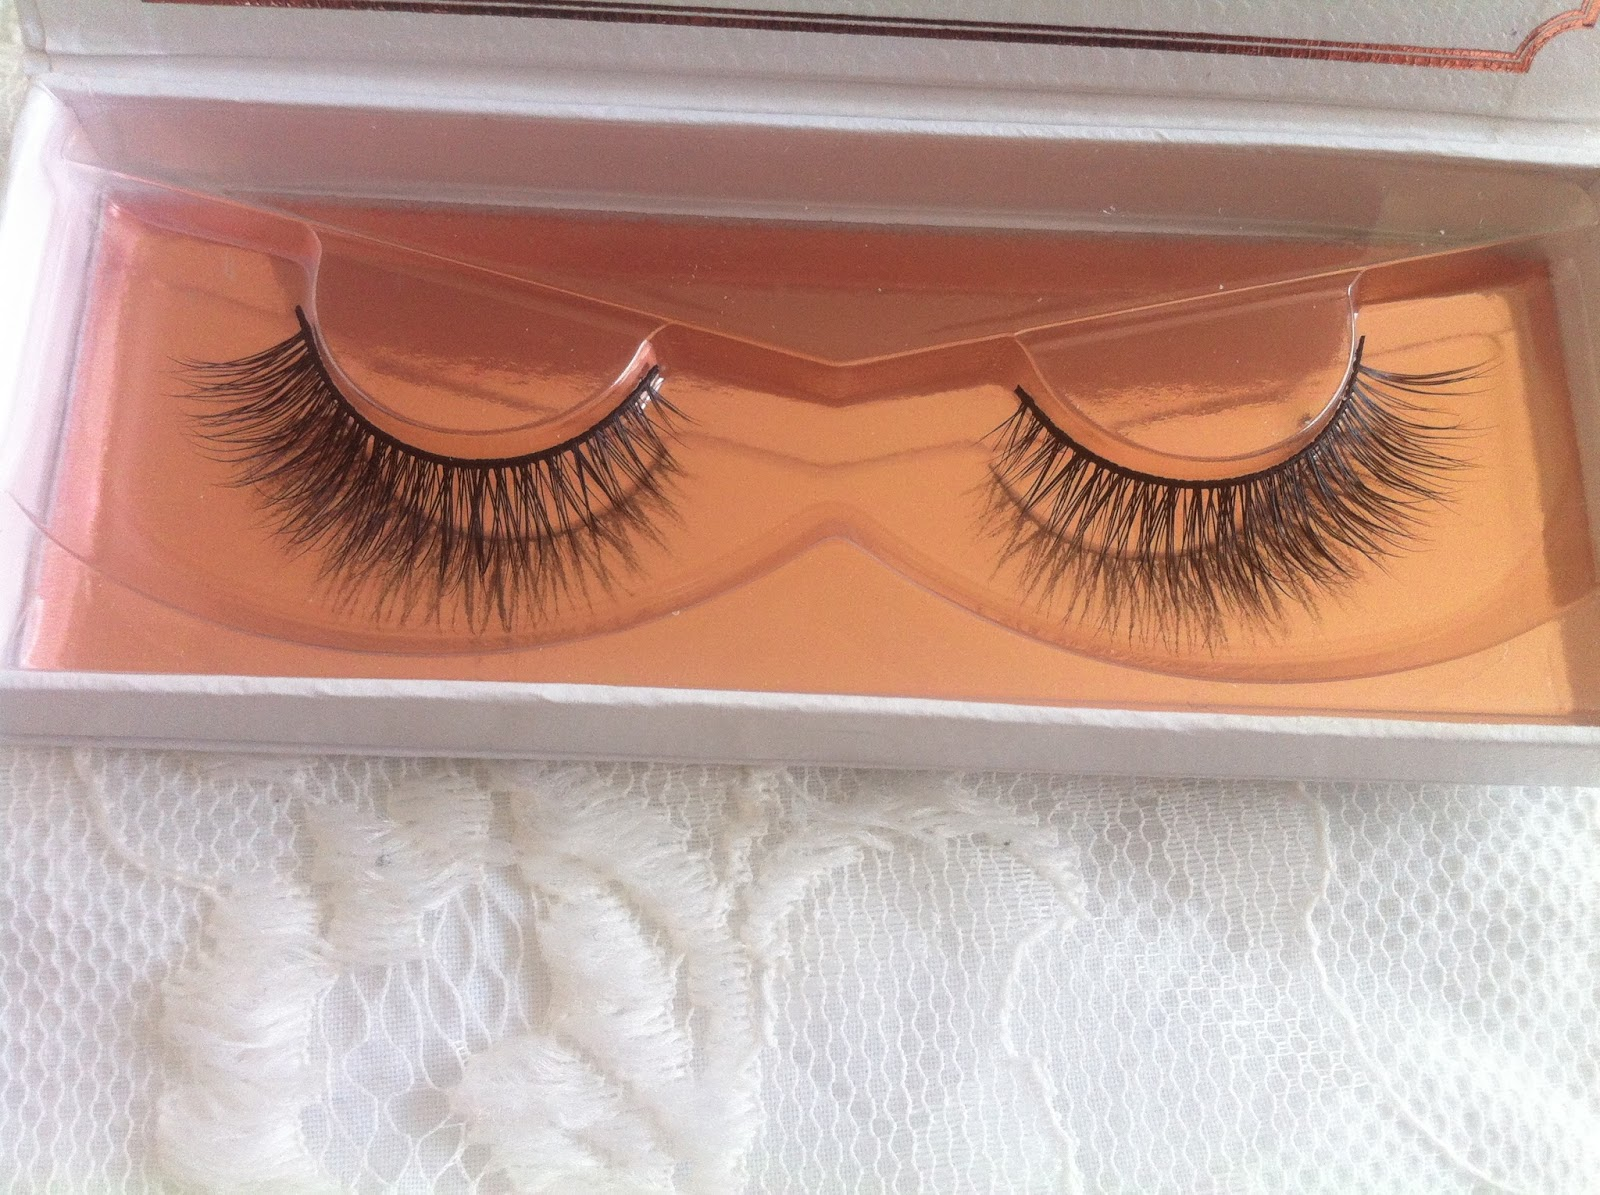 1f3befad2a5 I was kindly sent the ESQIDO Unforgettable False Eyelashes. The ESQIDO  Unforgettable False Eyelashes provide light volume which I think is perfect  for ...